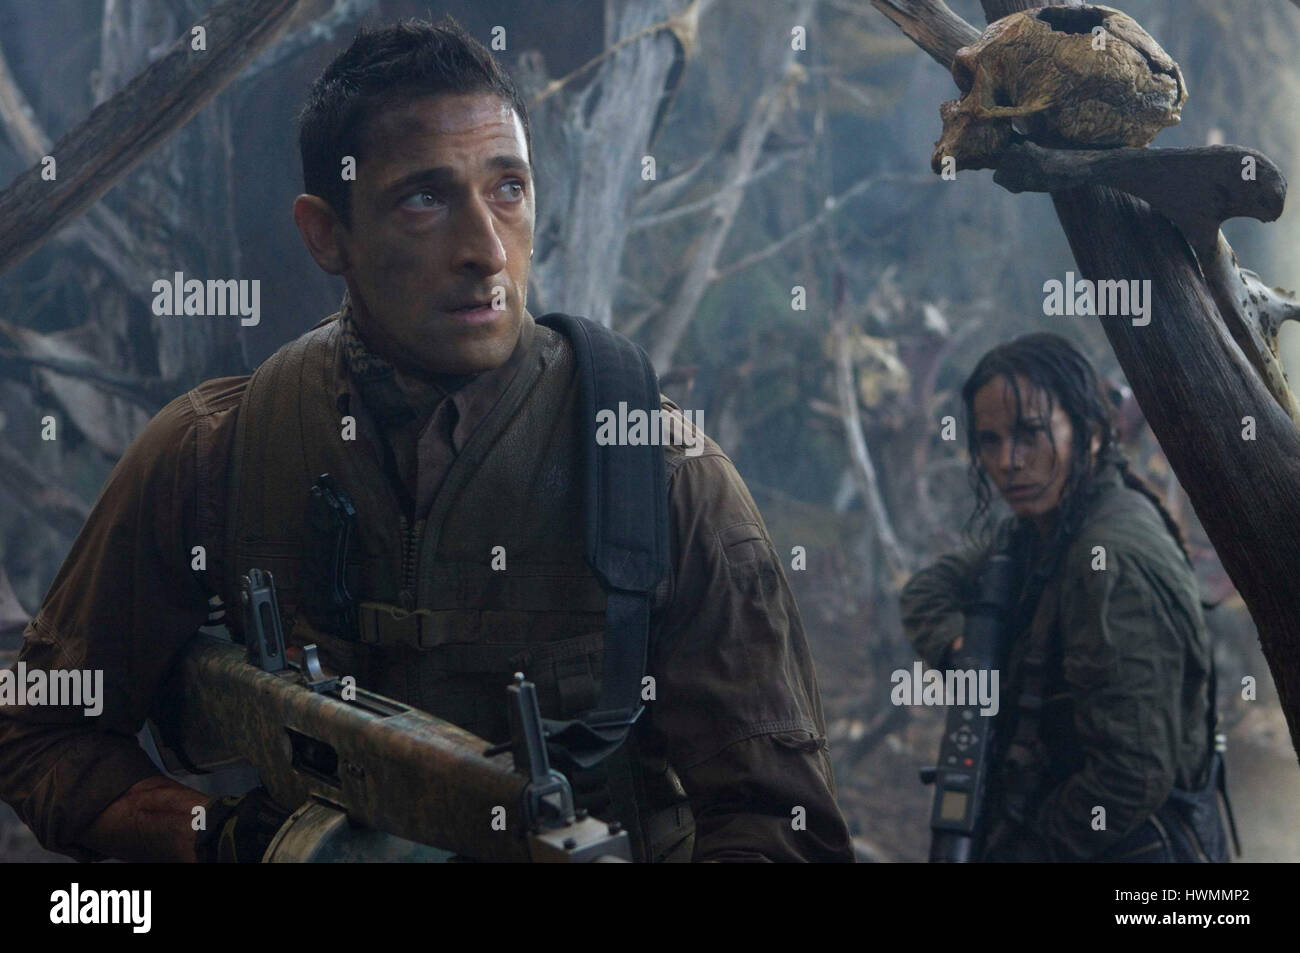 PREDATORS (2010) ADRIEN BRODY ALICE BRAGA NIMROD ANTAL (DIR) 20TH CENTURY FOX/MOVIESTORE COLLECTION LTD - Stock Image